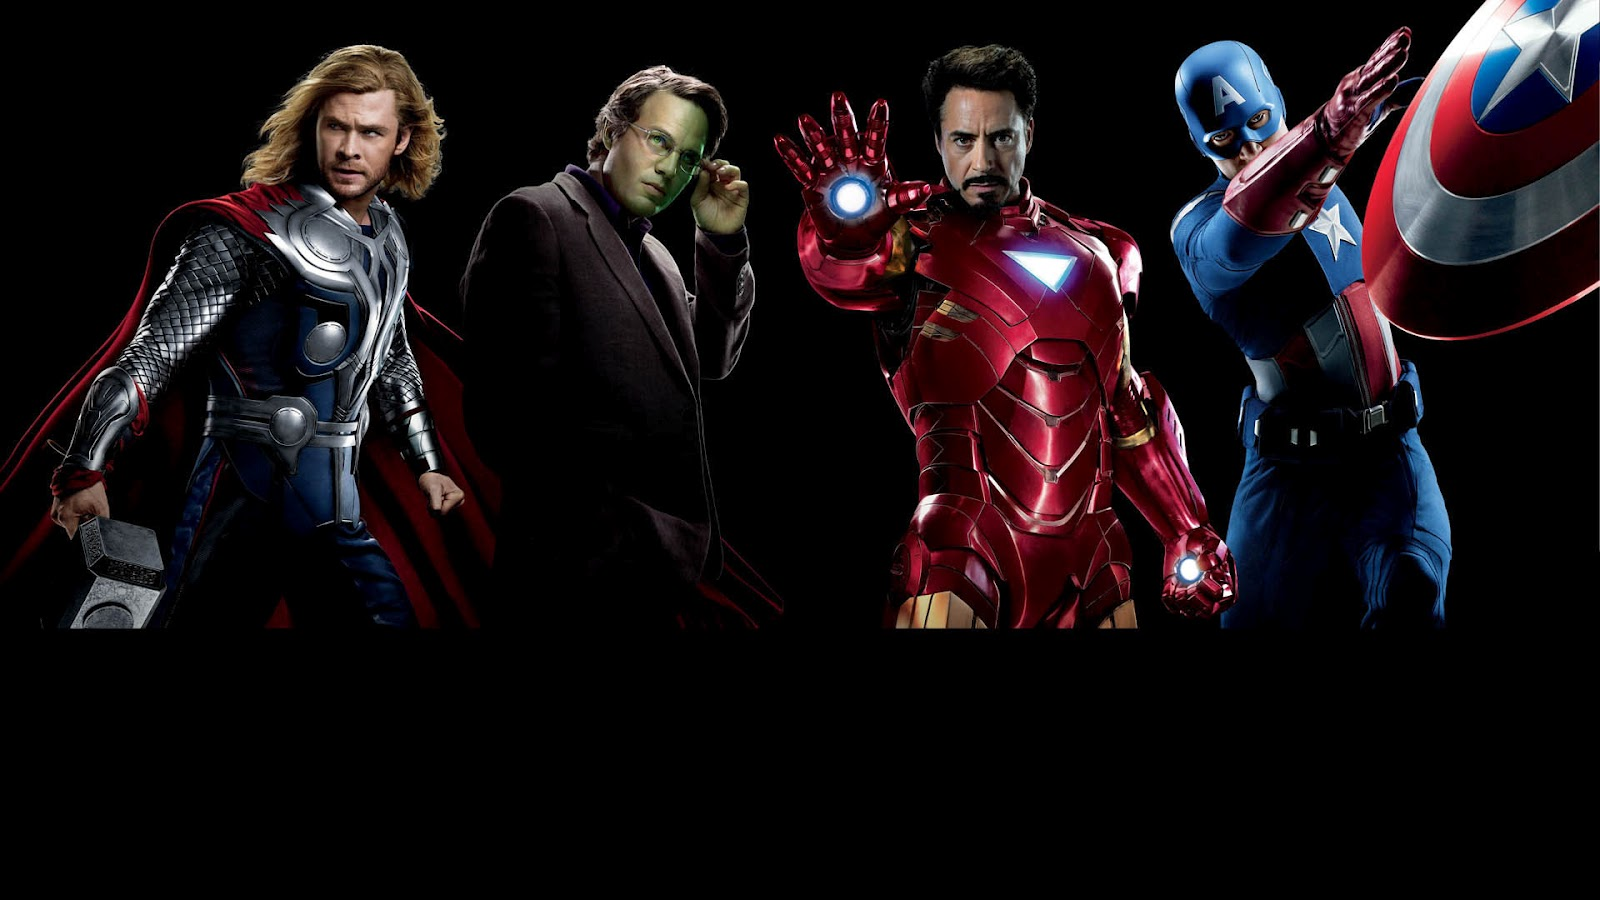 avengers movie hd wallpapers wallpapers hdwallpapers for